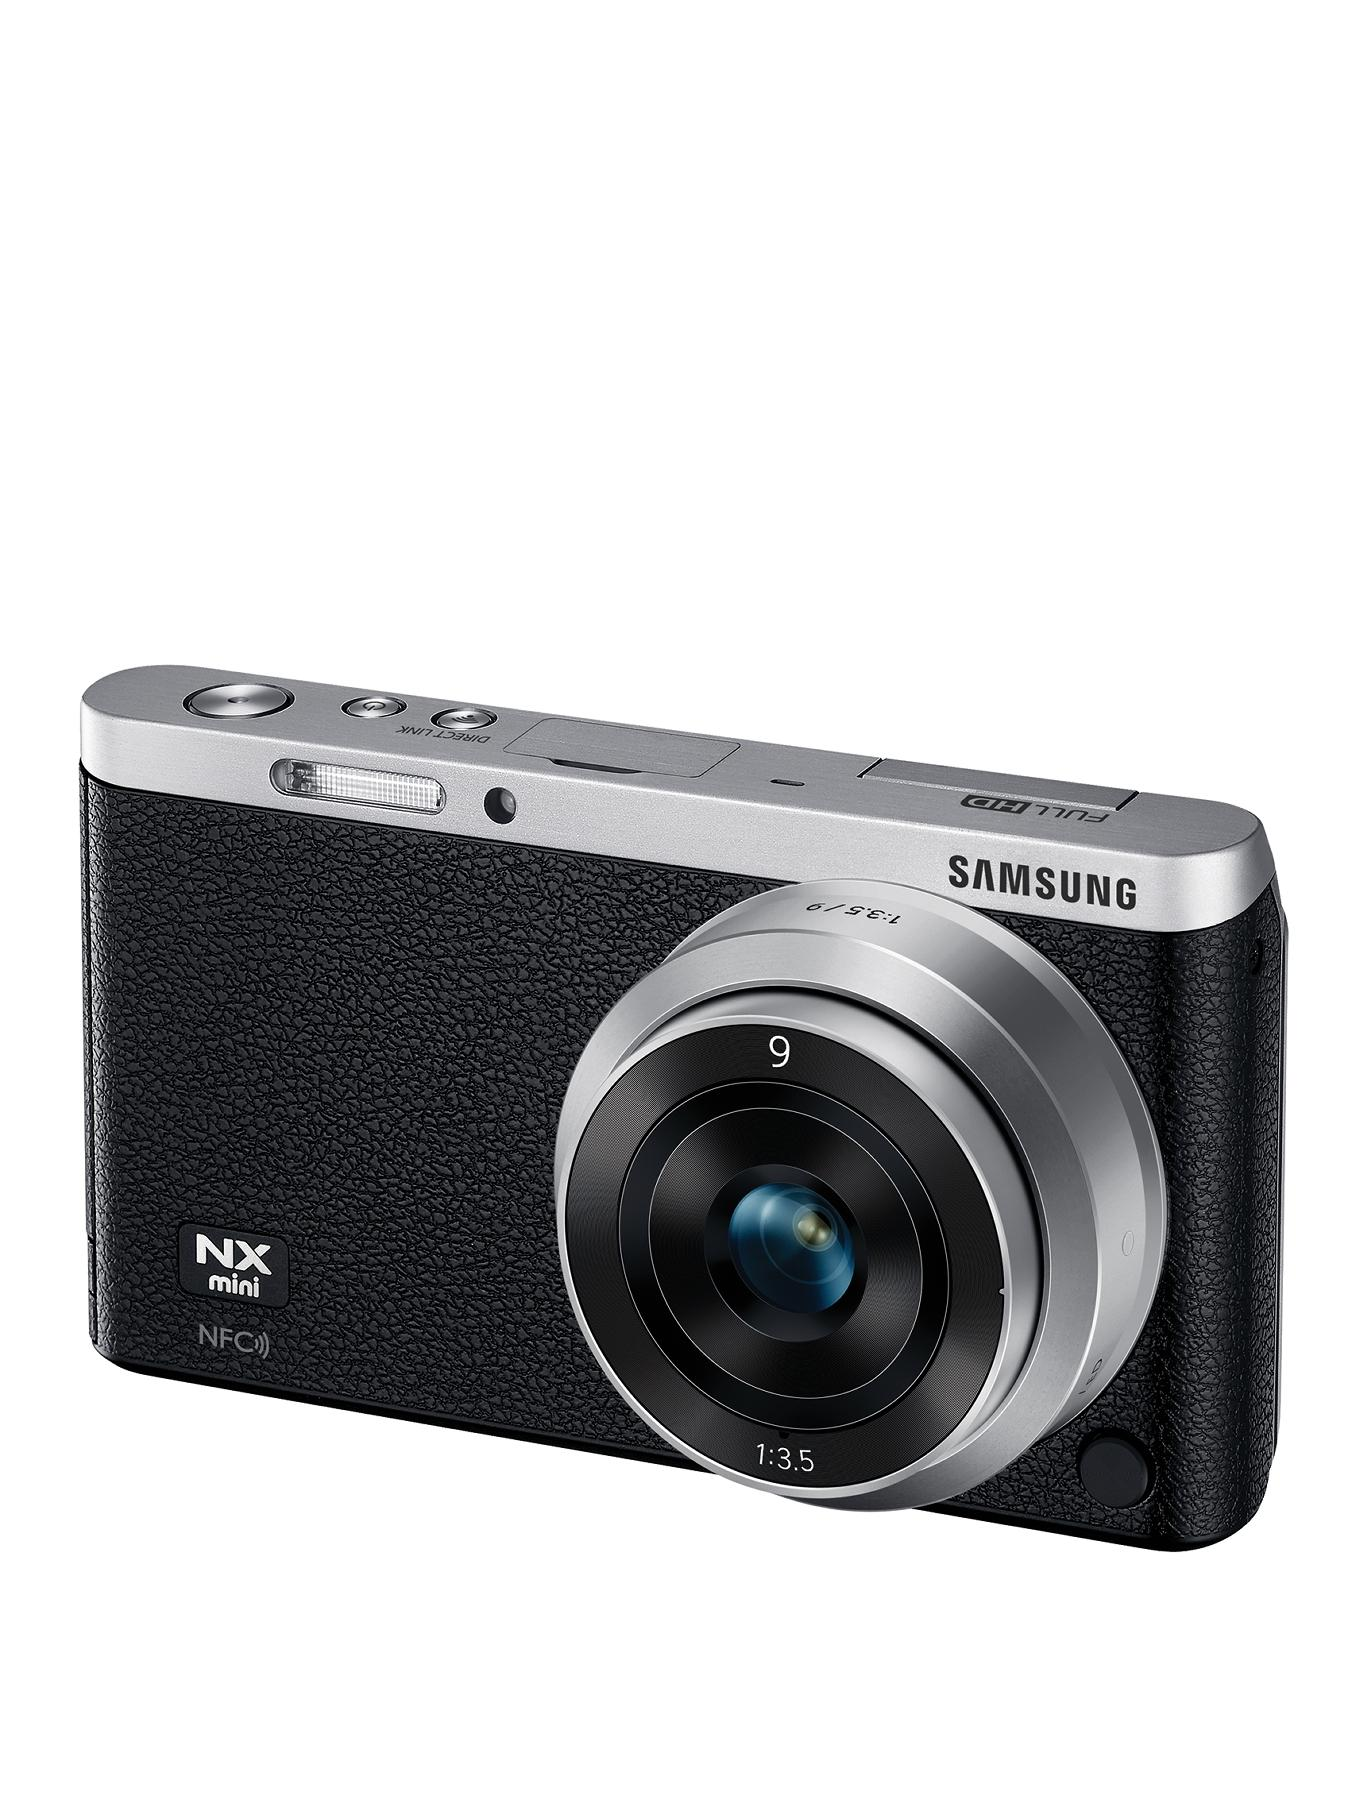 Samsung NX Mini 20.5 Megapixel Digital Camera - White, White at Very, from Littlewoods